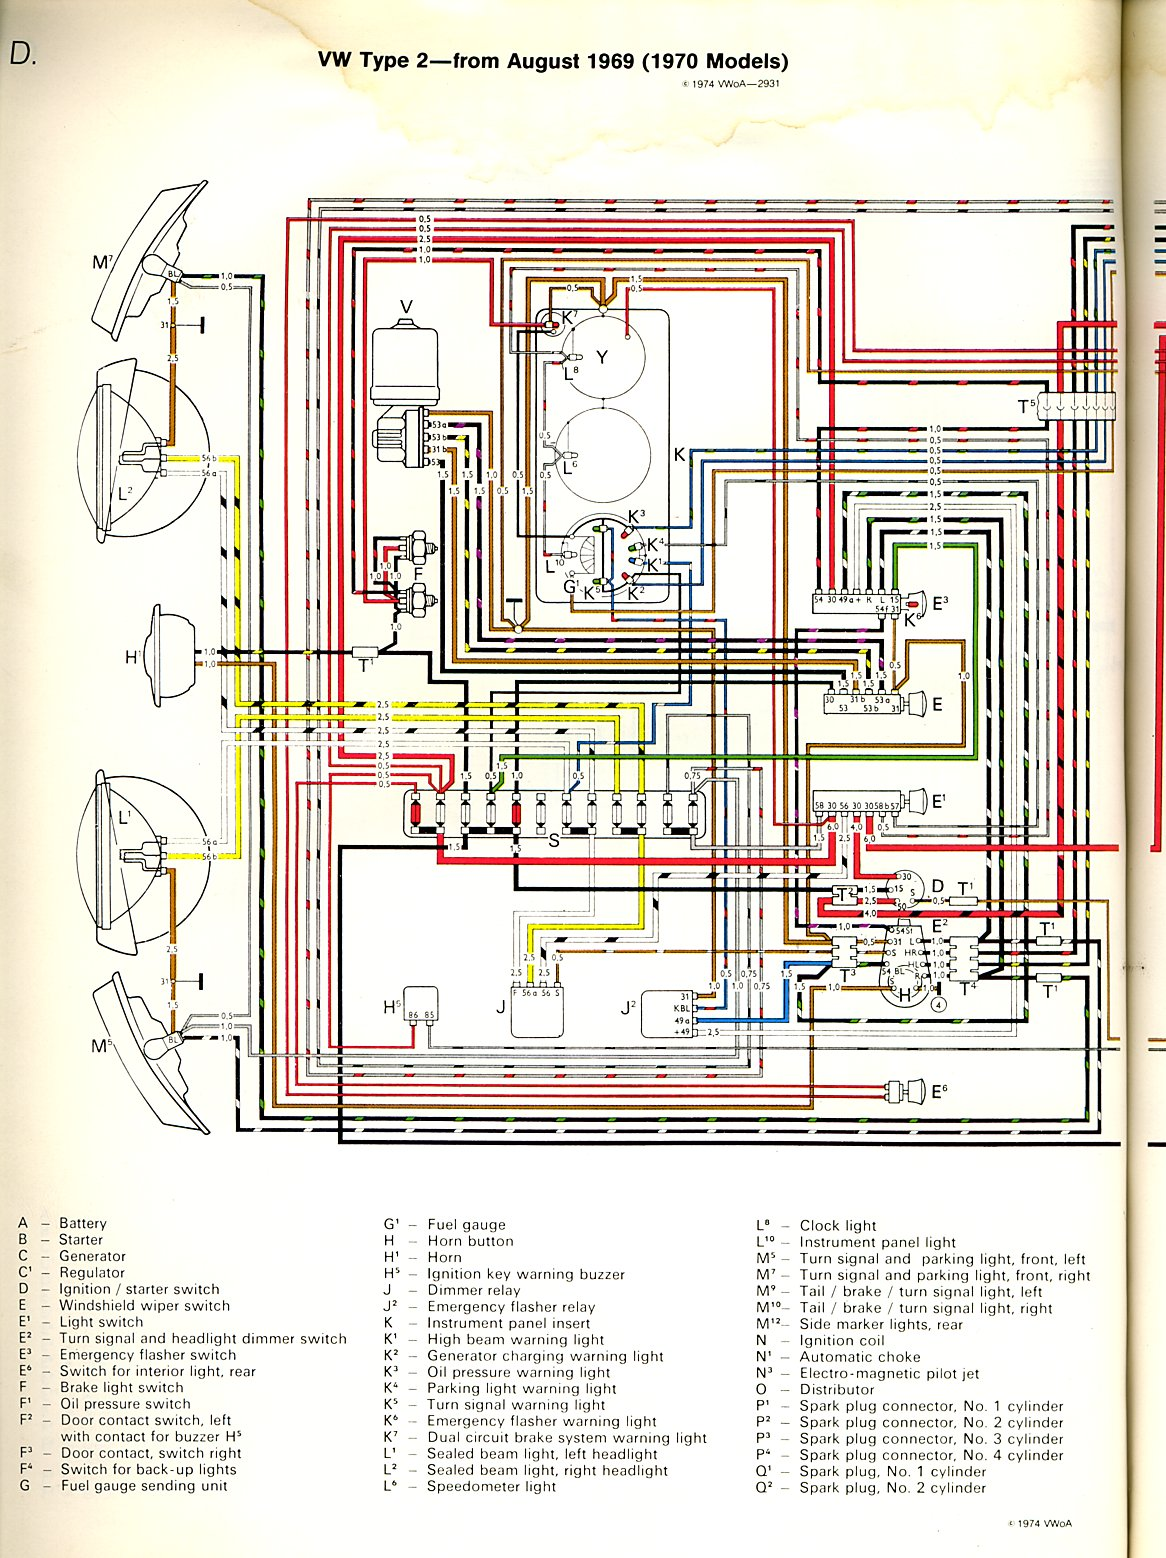 baybus_70a thesamba com type 2 wiring diagrams  at crackthecode.co